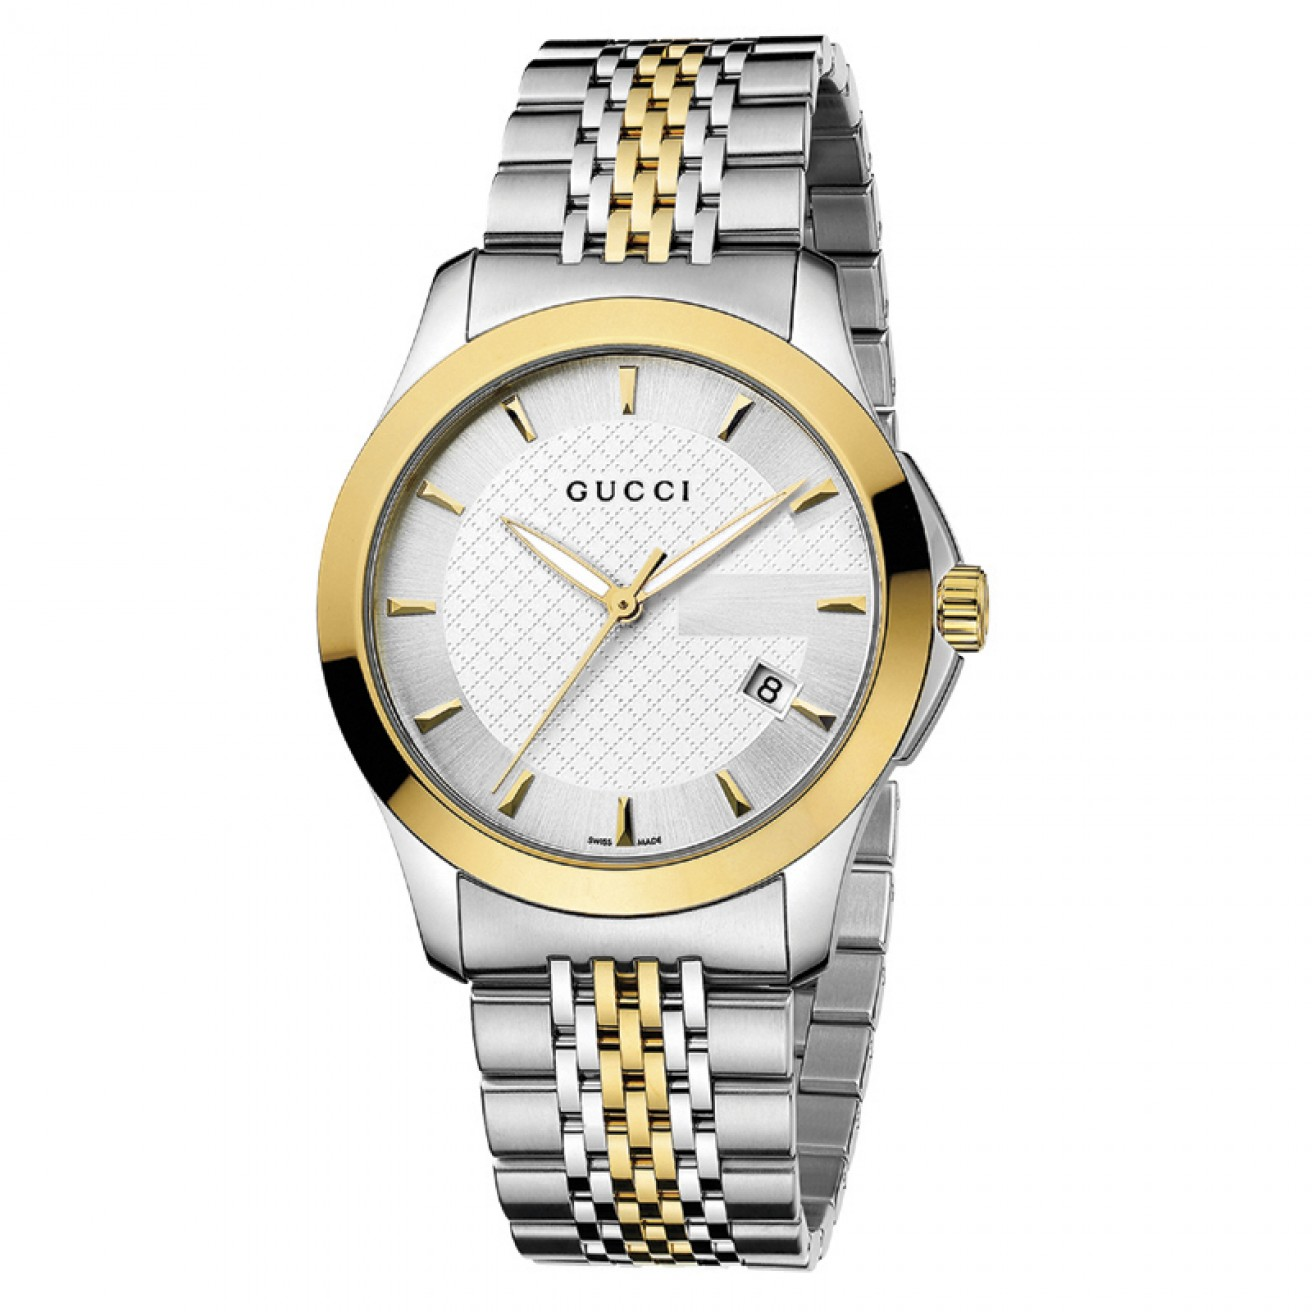 Searching Gucci - Buy Gucci Watches Ireland   Ladies Gucci Watches ...